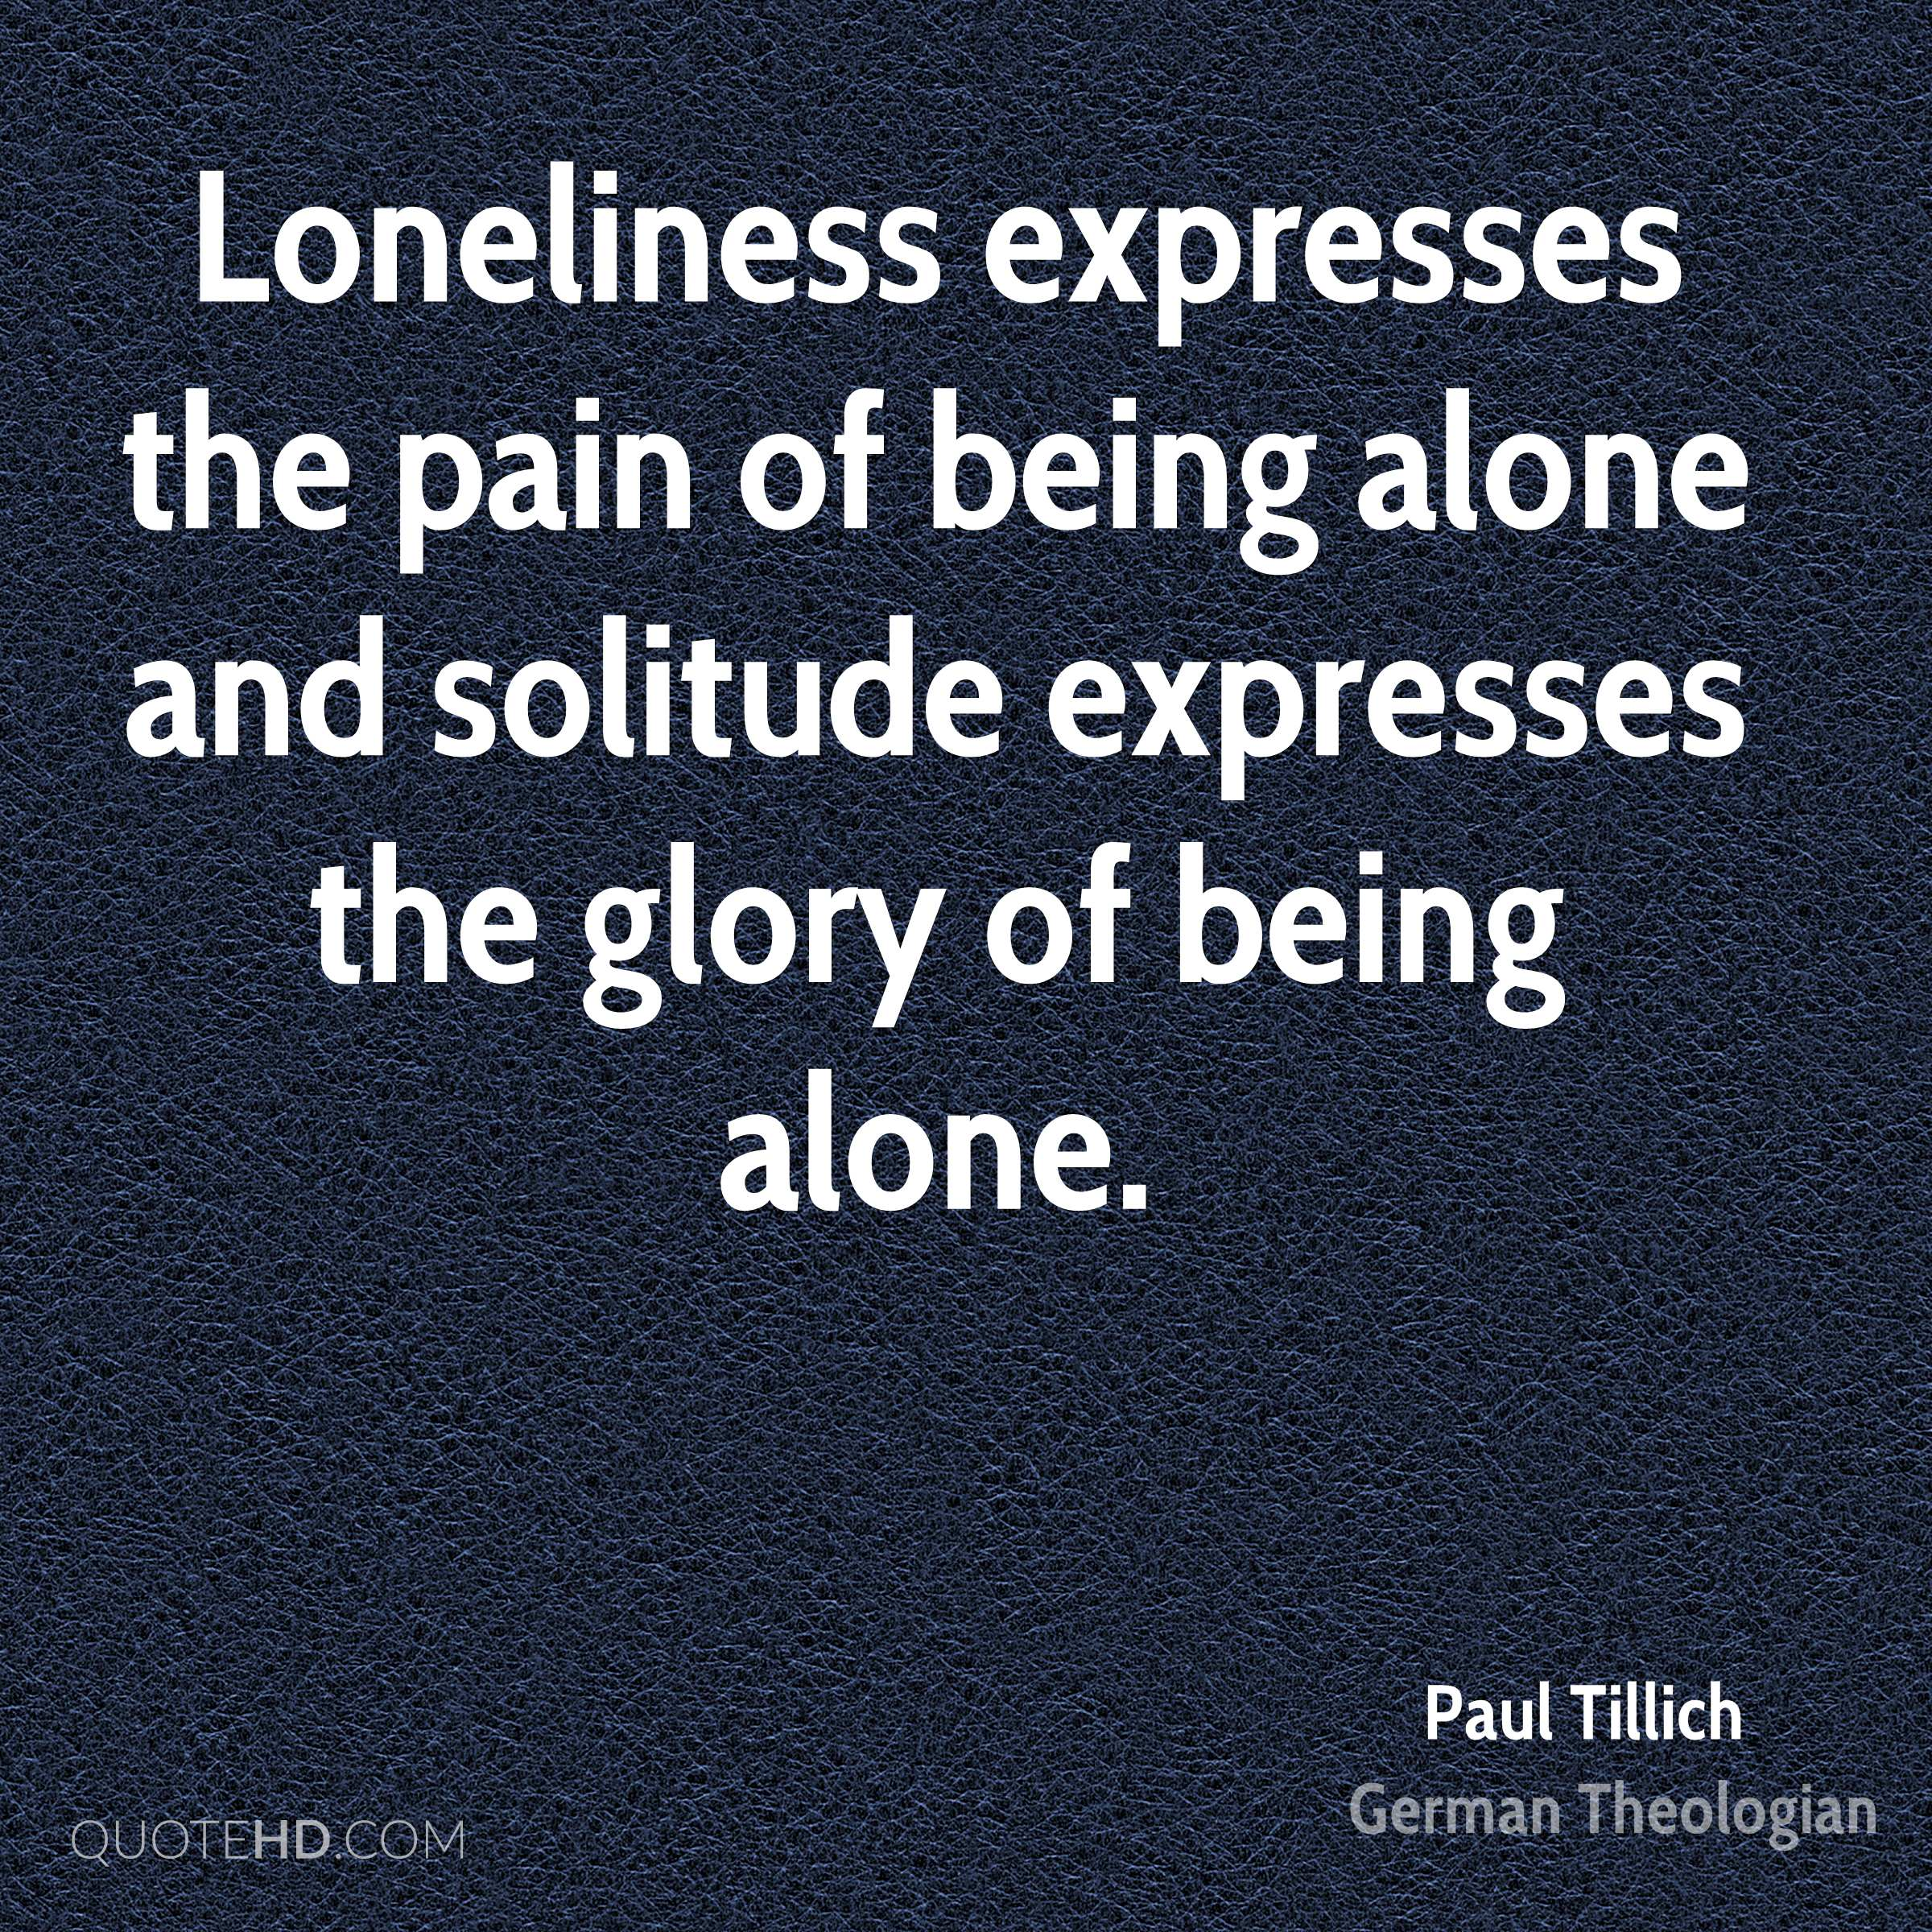 Quotes On Solitude Paul Tillich Quotes  Quotehd